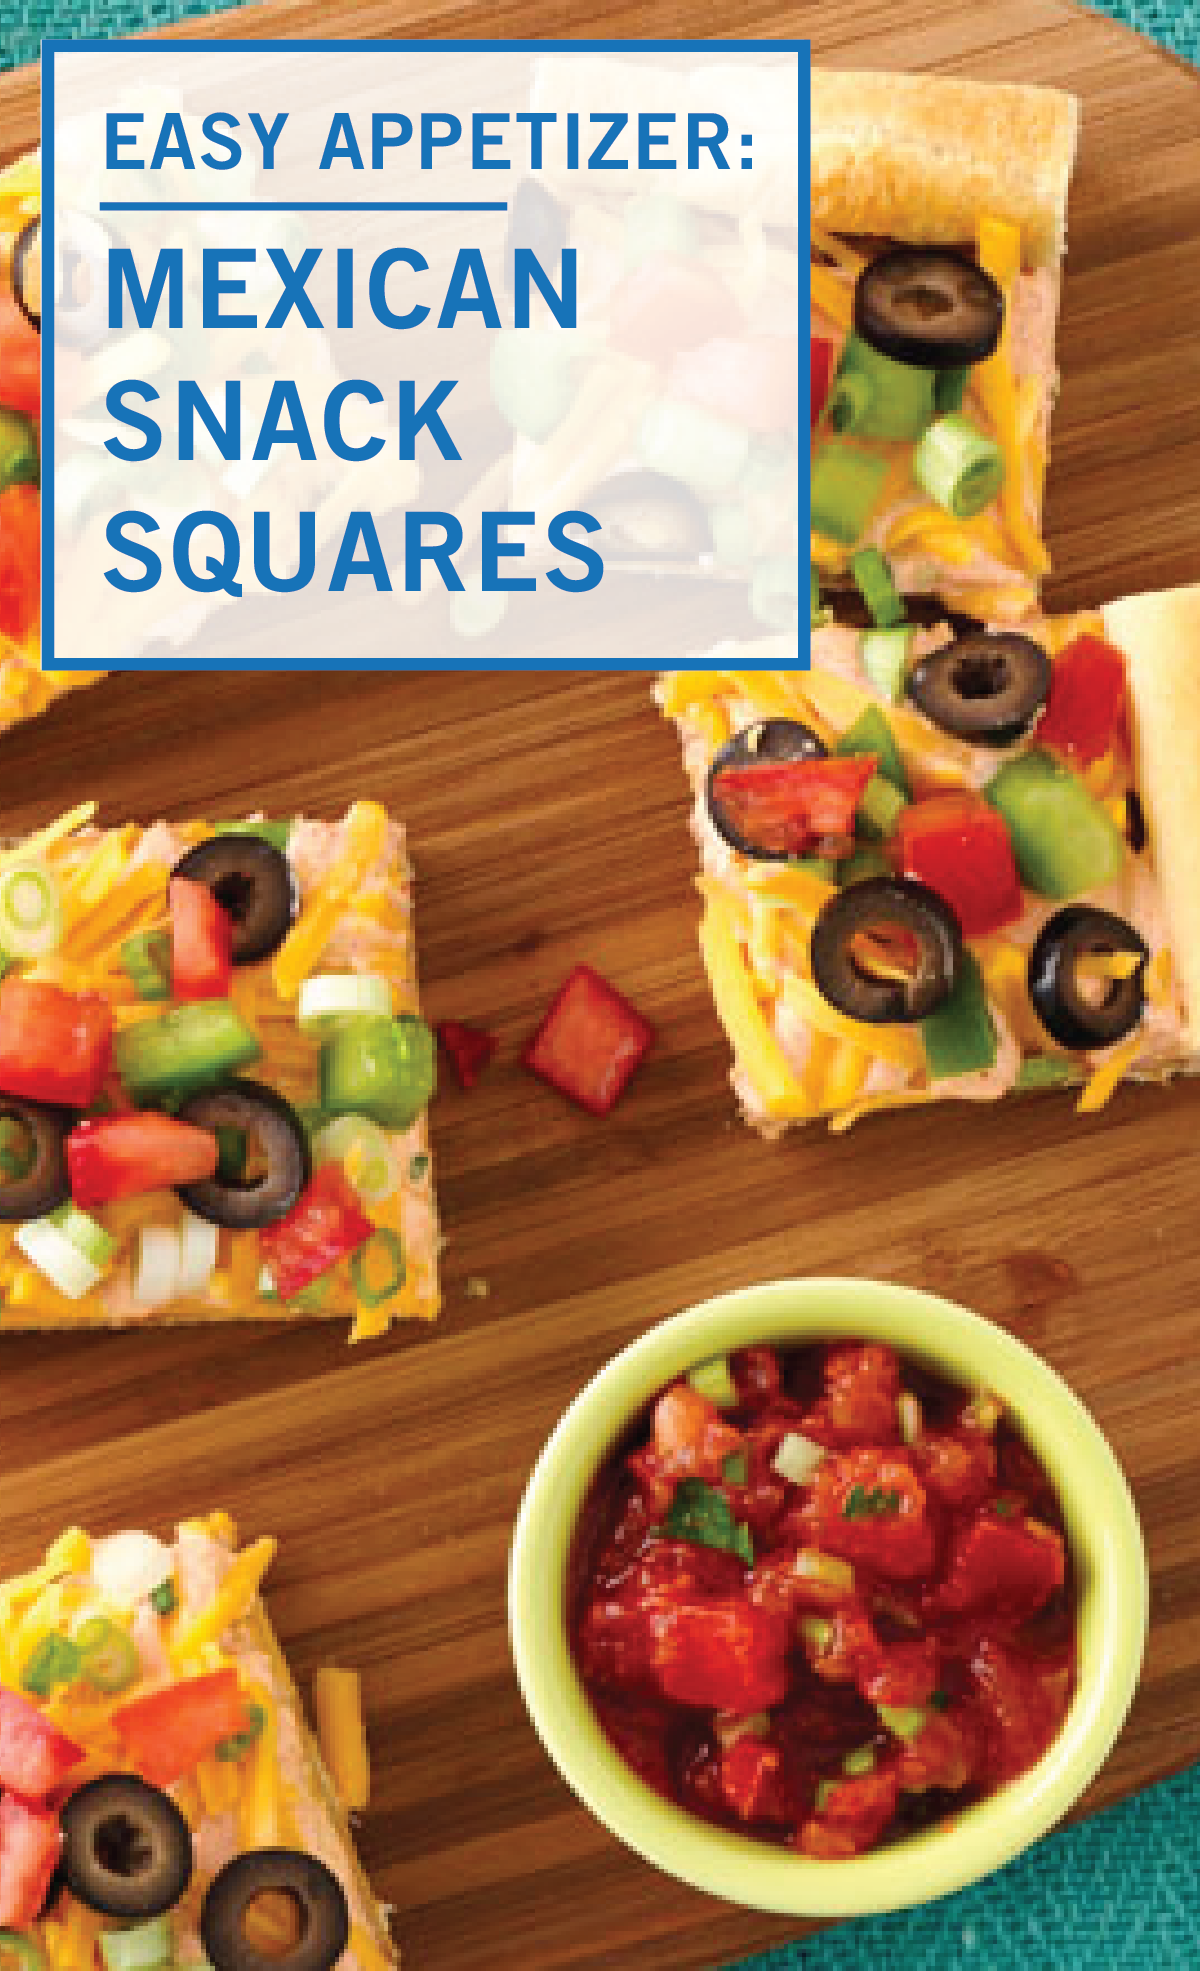 These Mexican Snack Squares combine two of your favorite